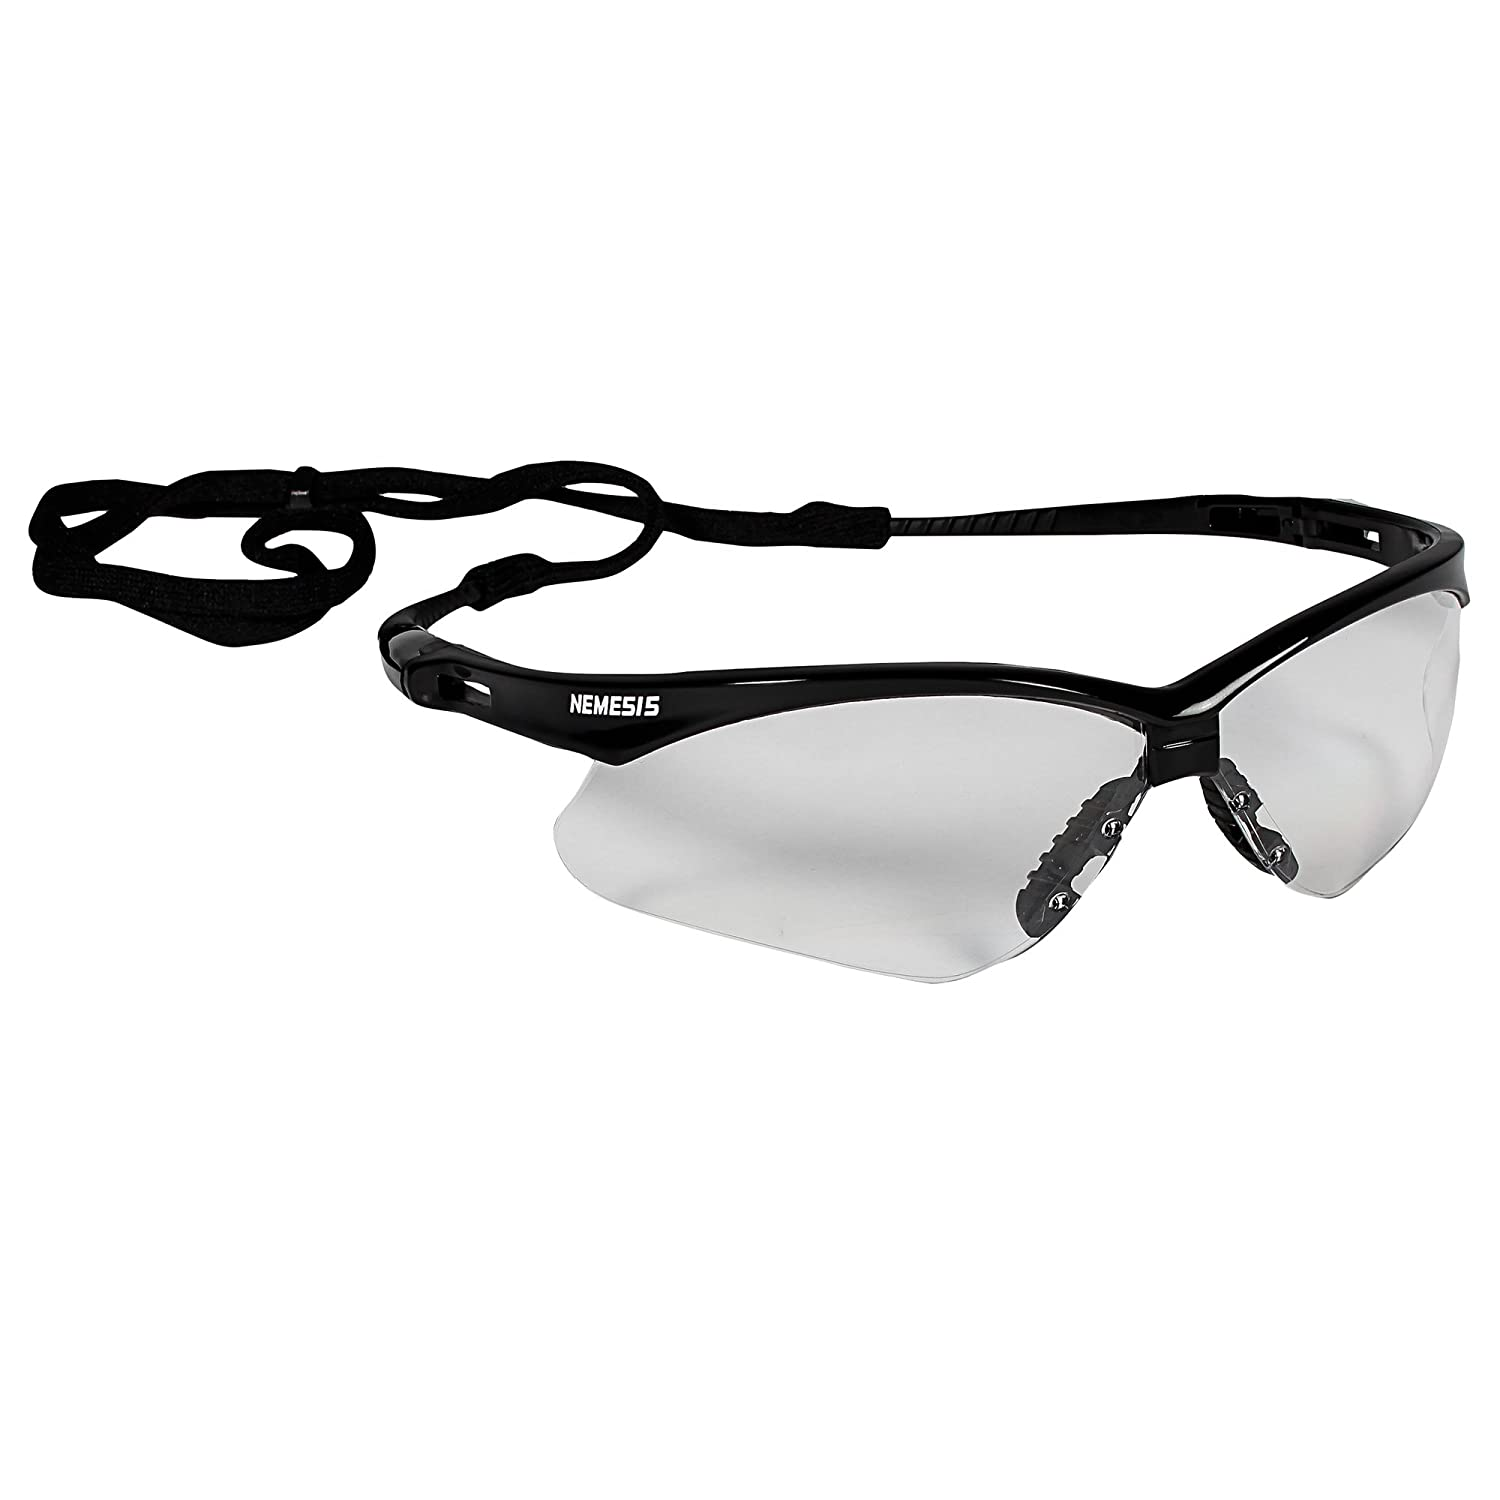 KLEENGUARD V30 Nemesis Safety Glasses (25676), Clear with Black Frame, 12 Pairs / Case